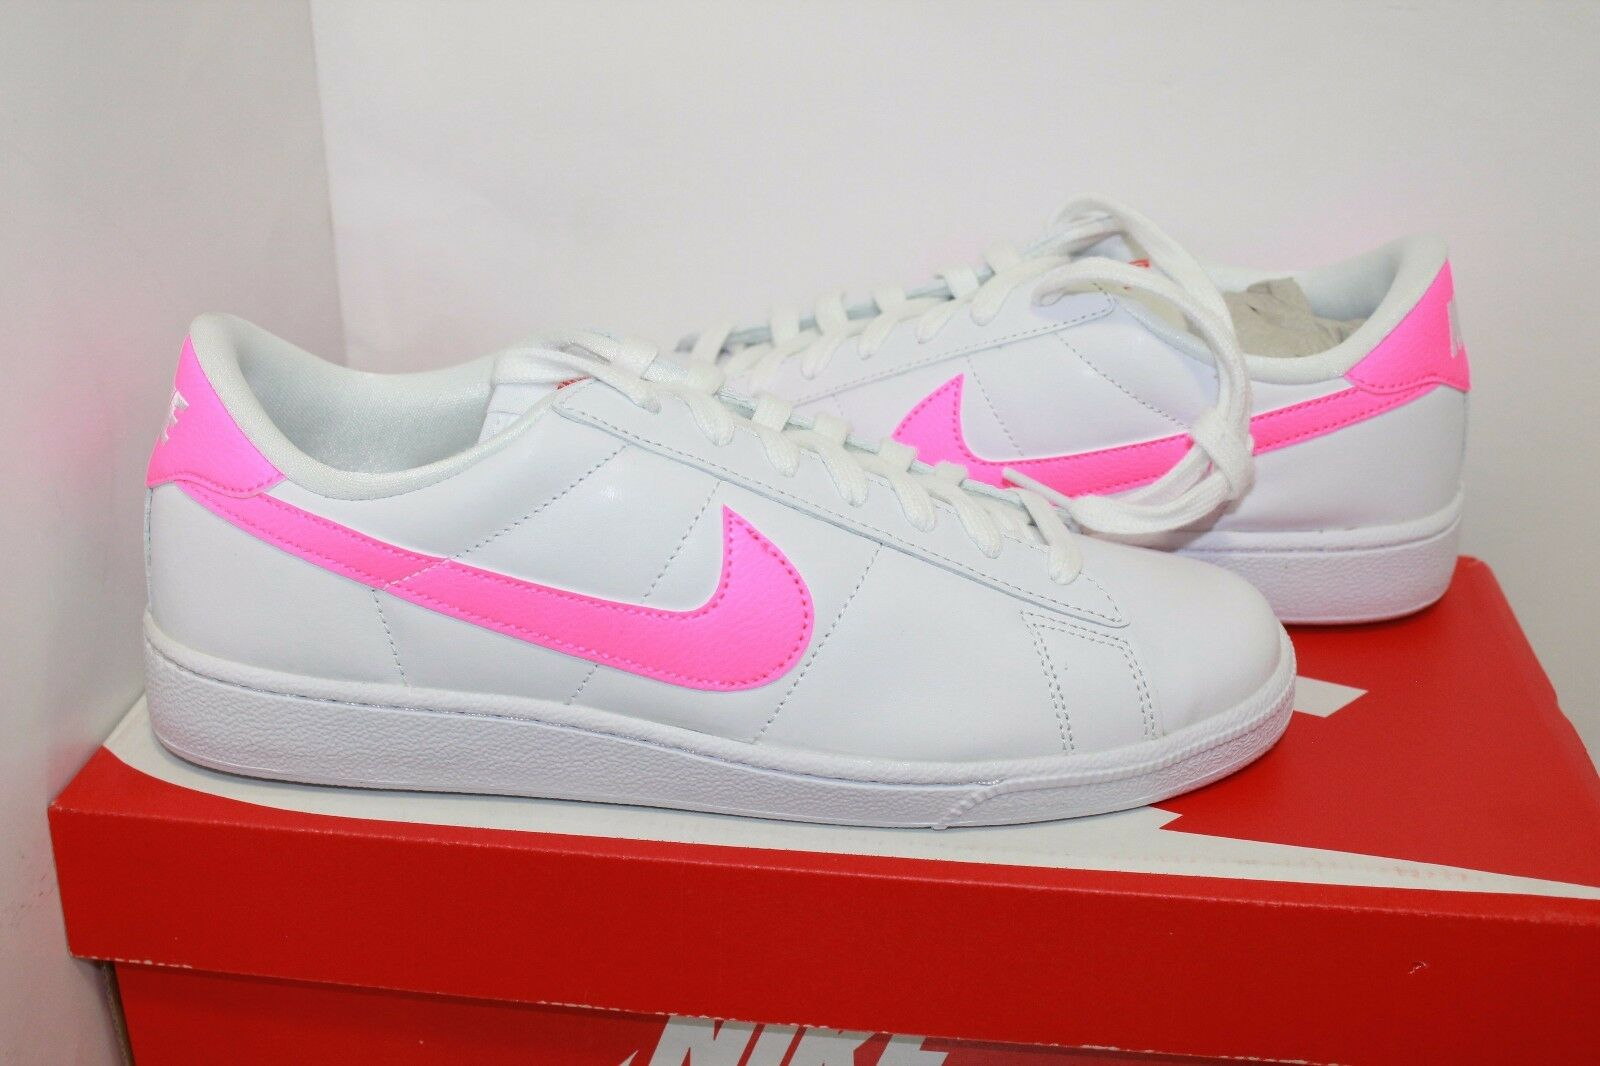 Women's Nike Tennis Classic Classic Classic Casual shoes, White  Pink - Size US 10 30a872